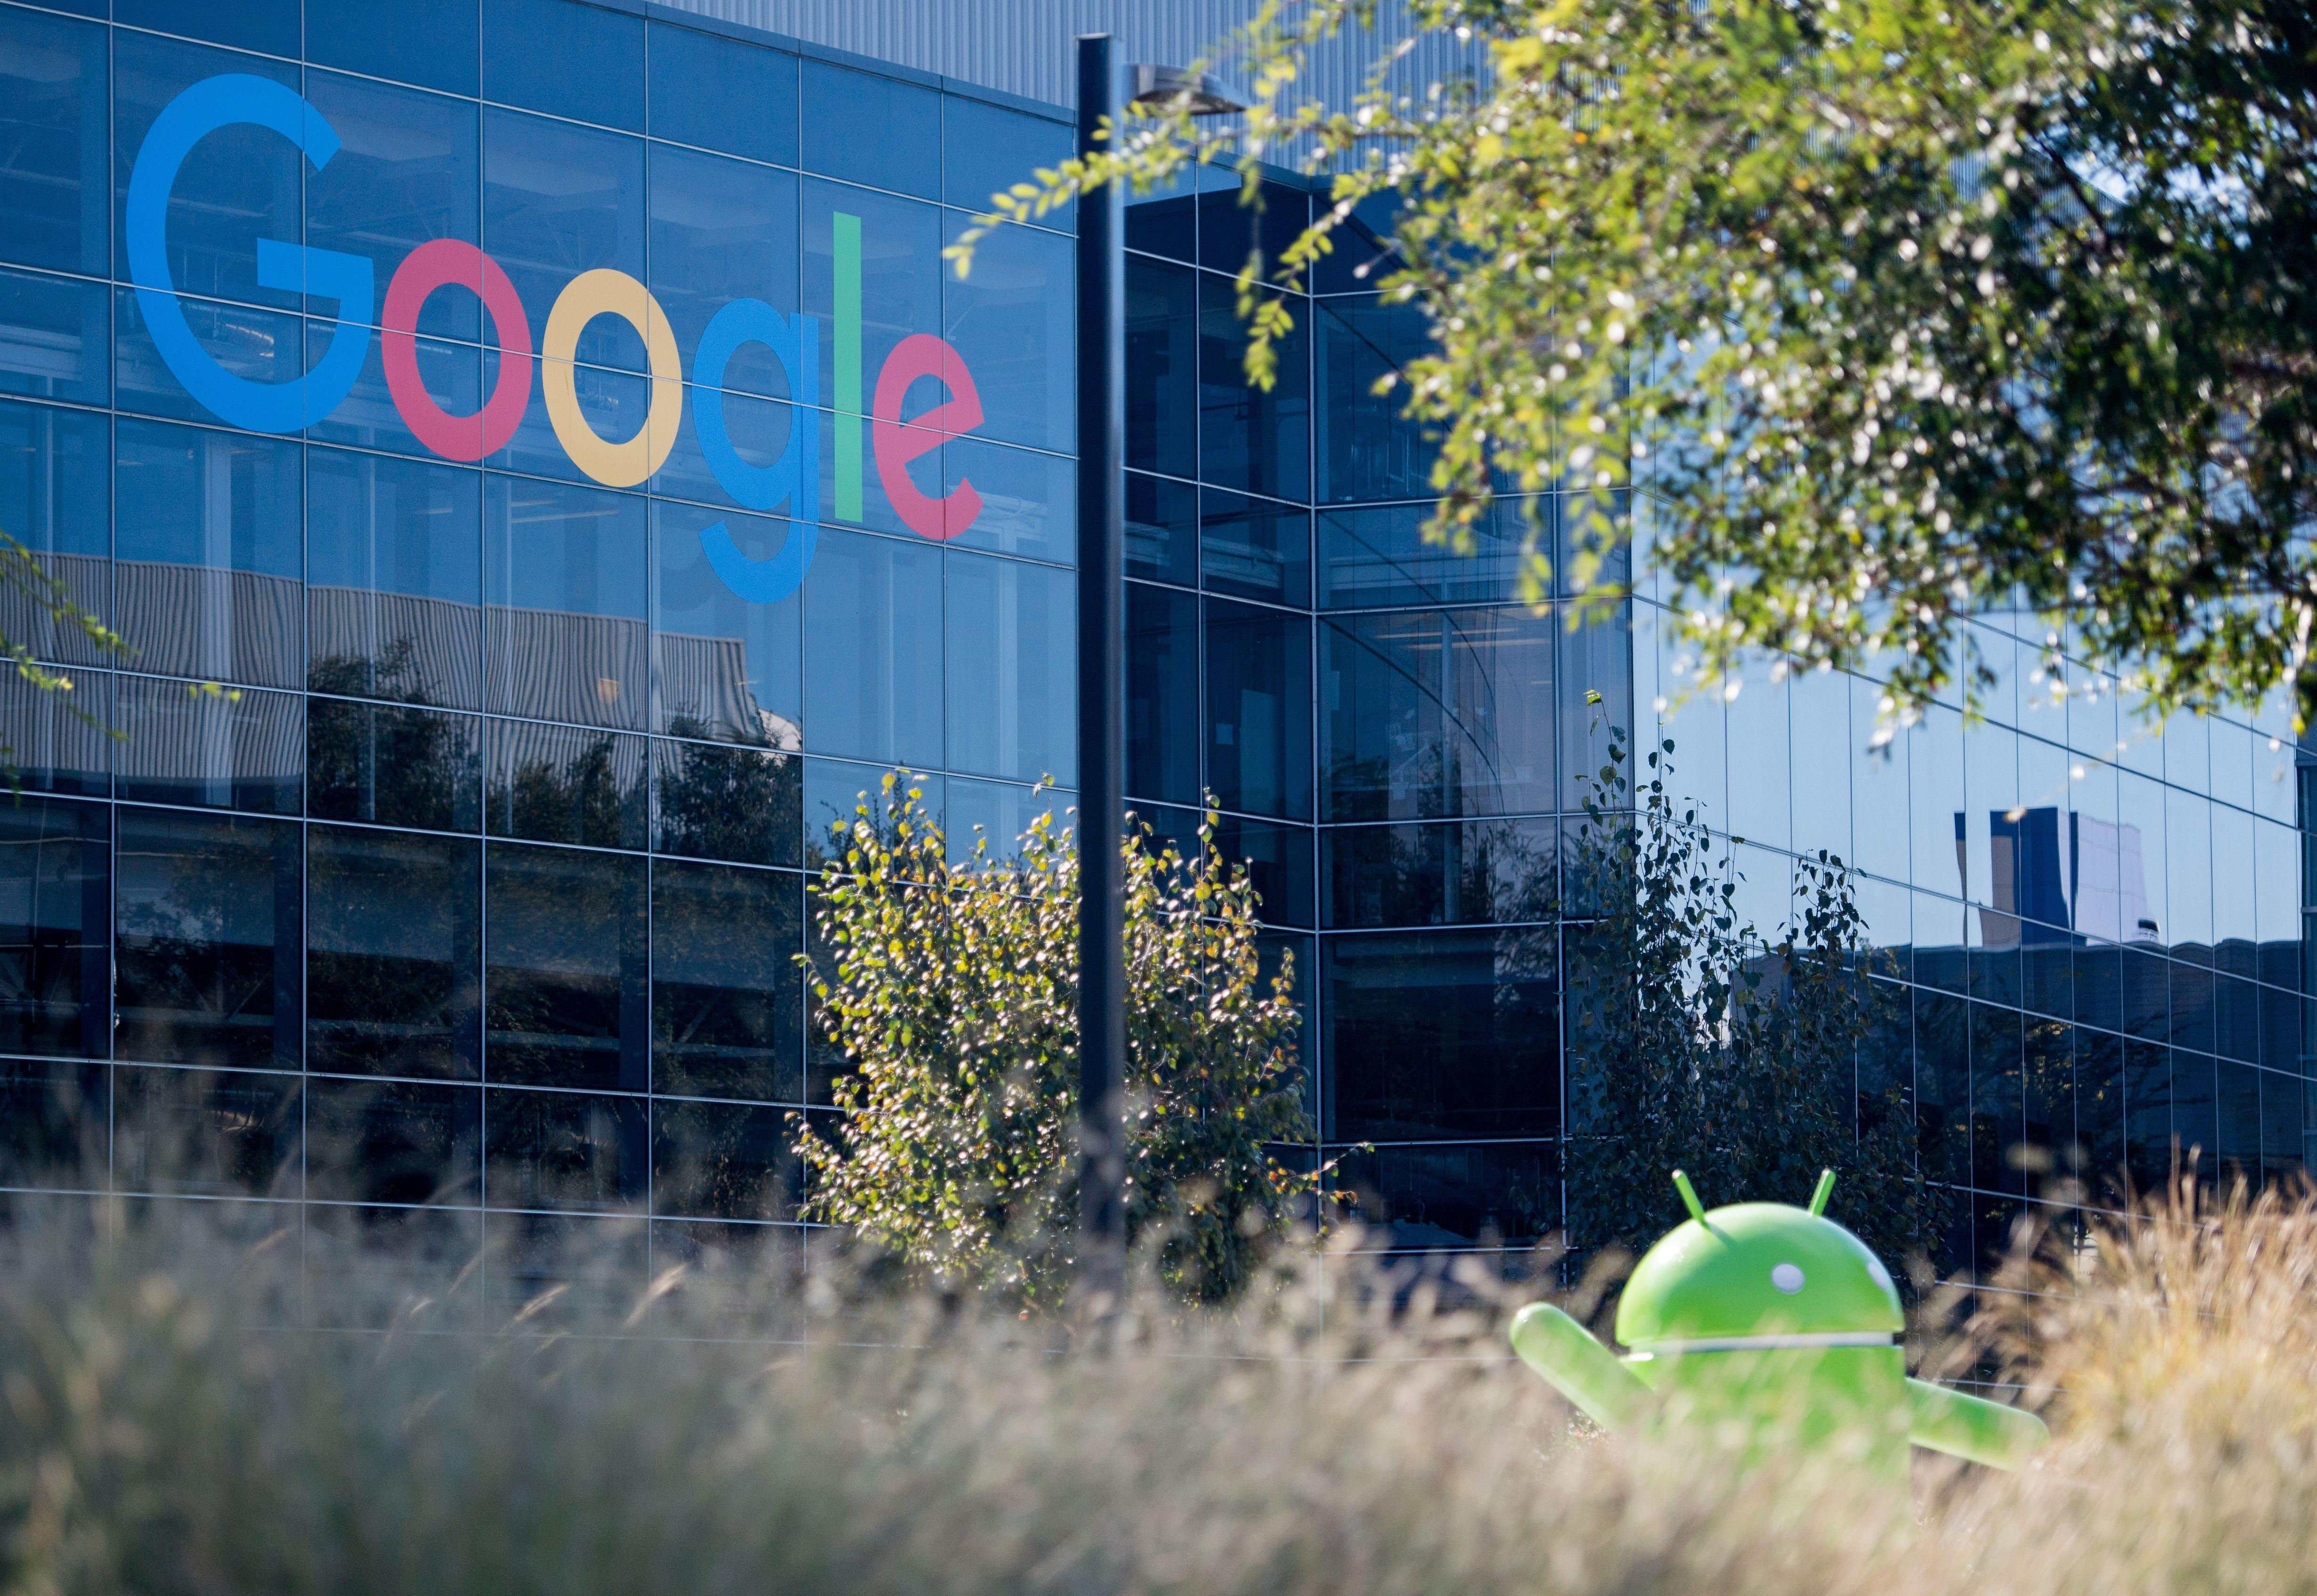 A Google logo and Android statue are seen at the Googleplex in Menlo Park, California on November 4, 2016.  / AFP PHOTO / JOSH EDELSON        (Photo credit should read JOSH EDELSON/AFP/Getty Images)